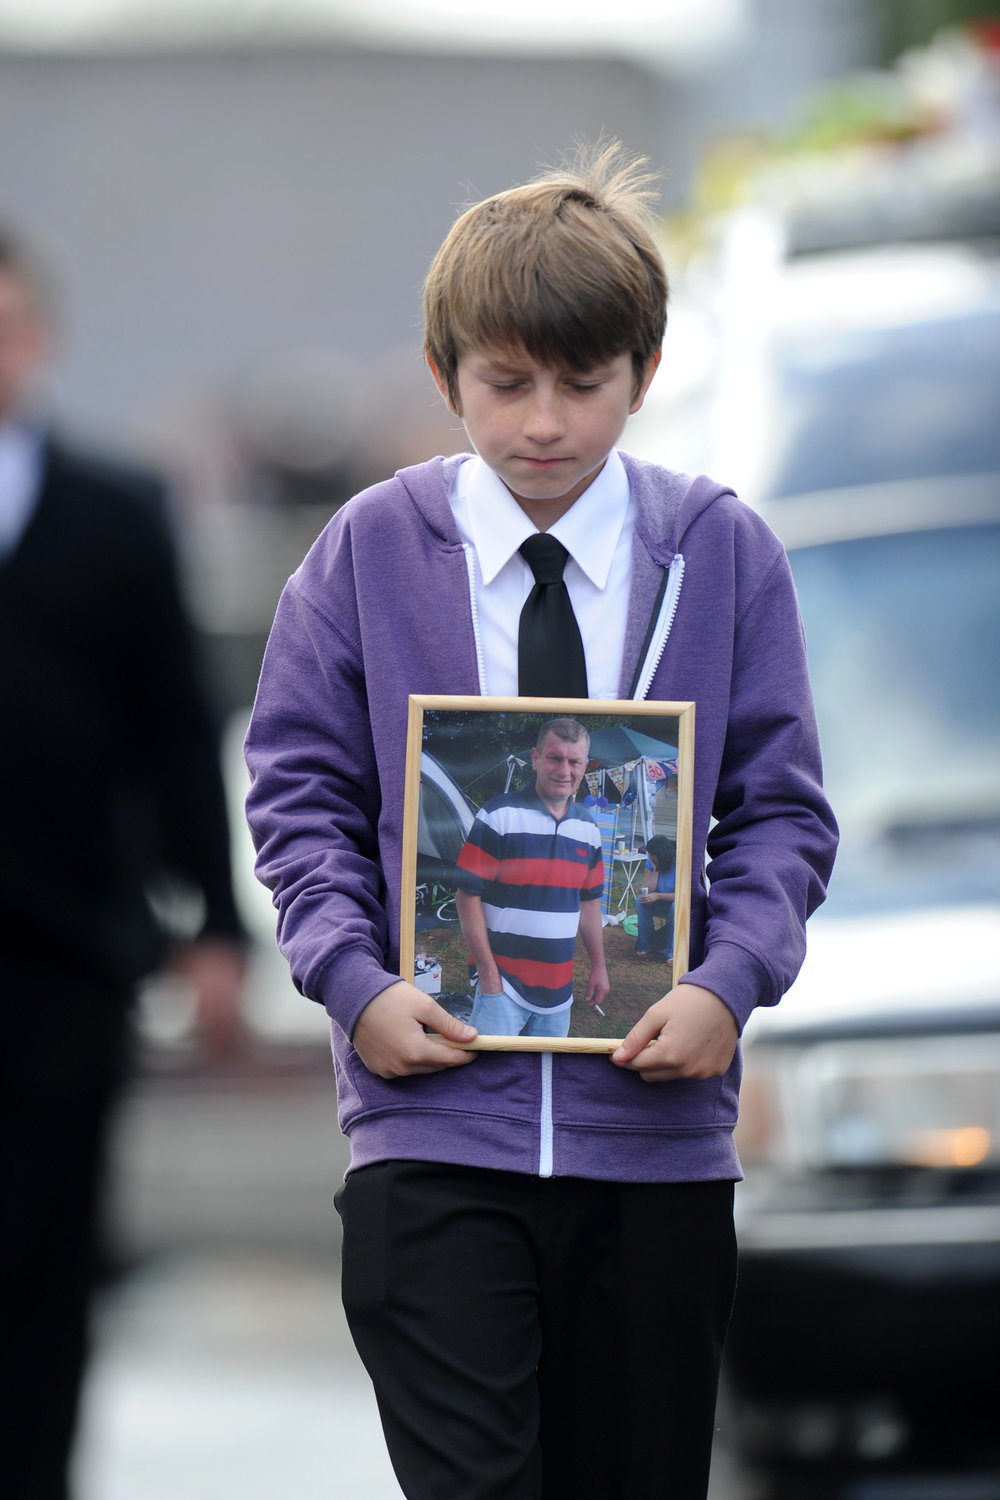 061011